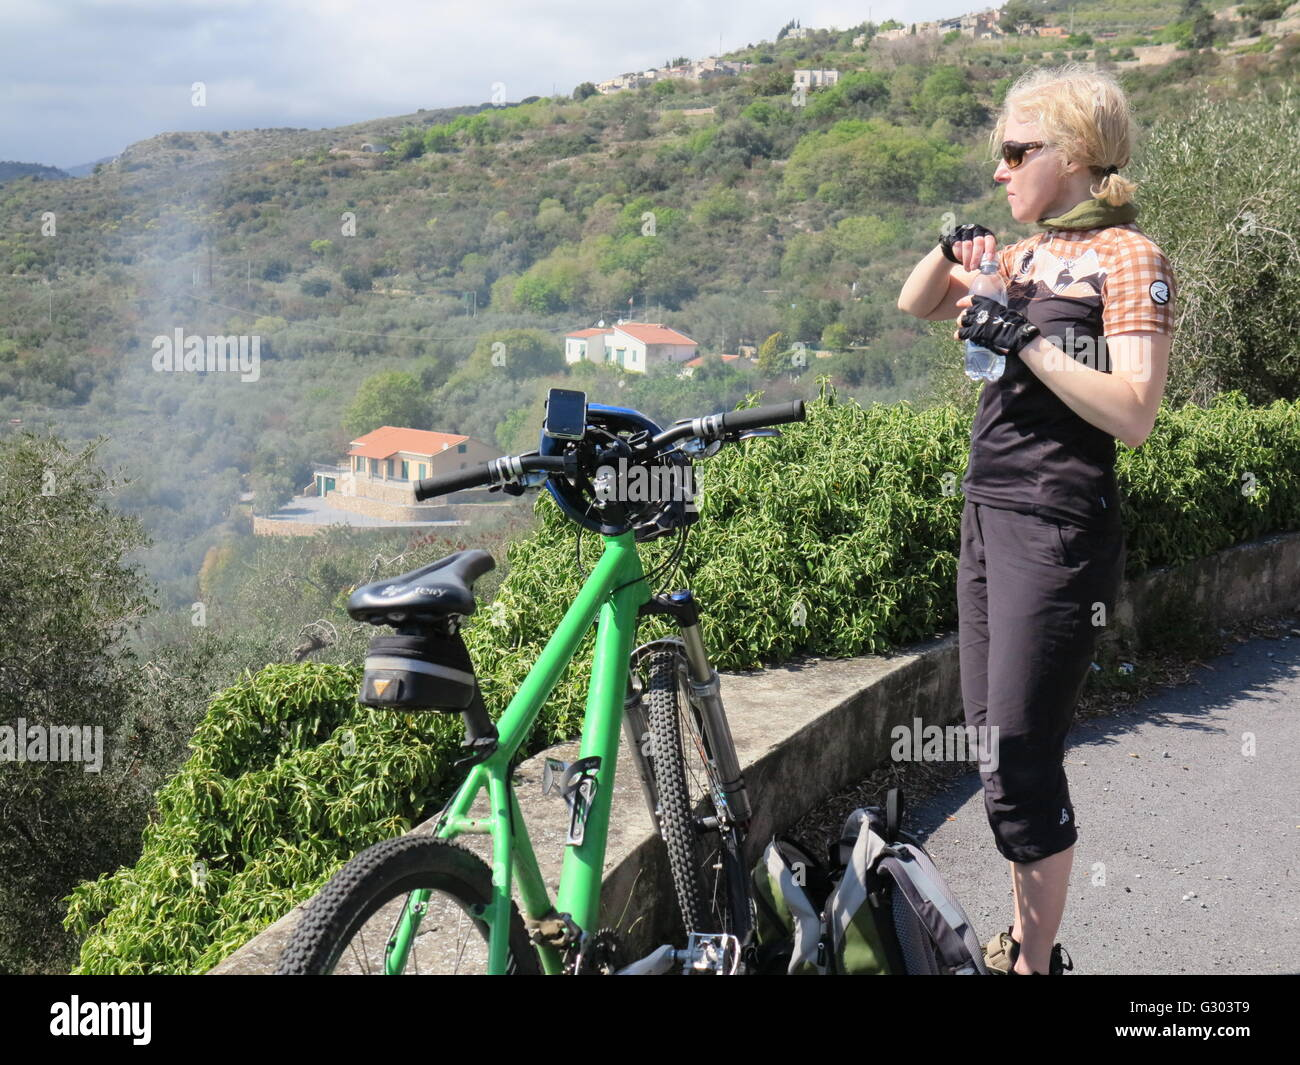 Woman taking a refreshment from a water bottle during a mountain bike ride on the Italian Riviera, Liguria, Italy, - Stock Image